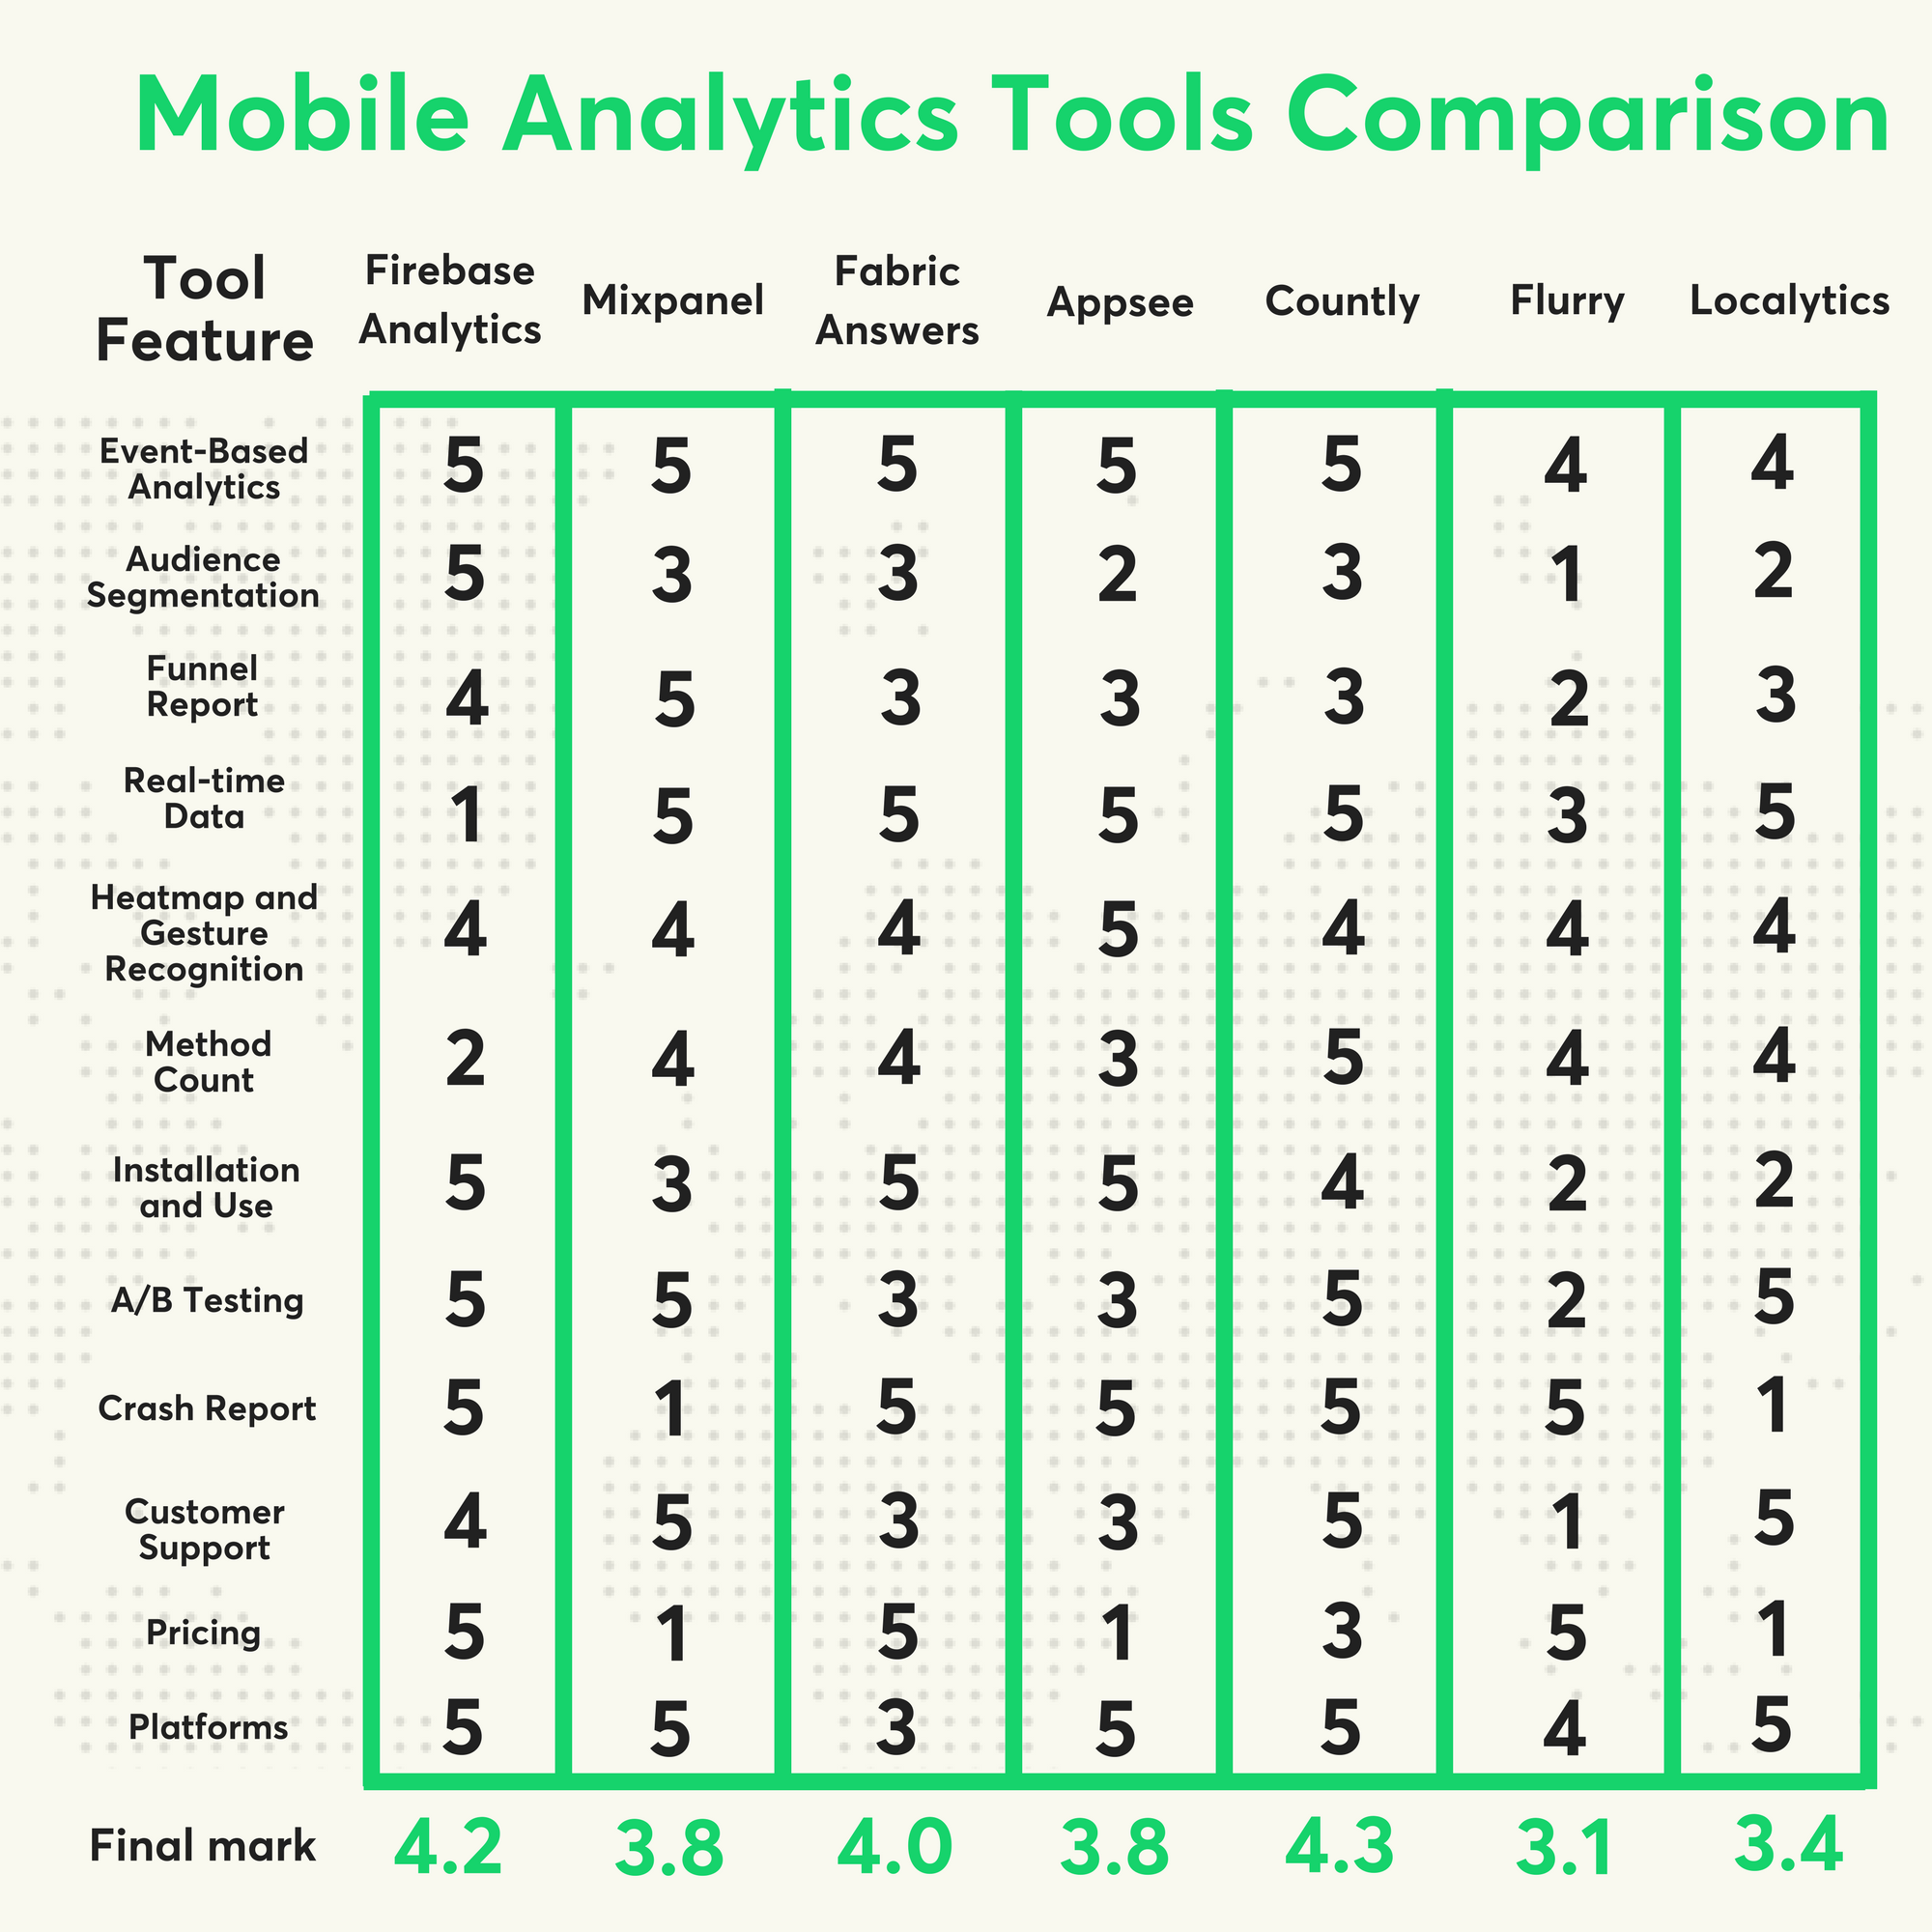 Mobile Analytics Tools Comparison 1 (1).png